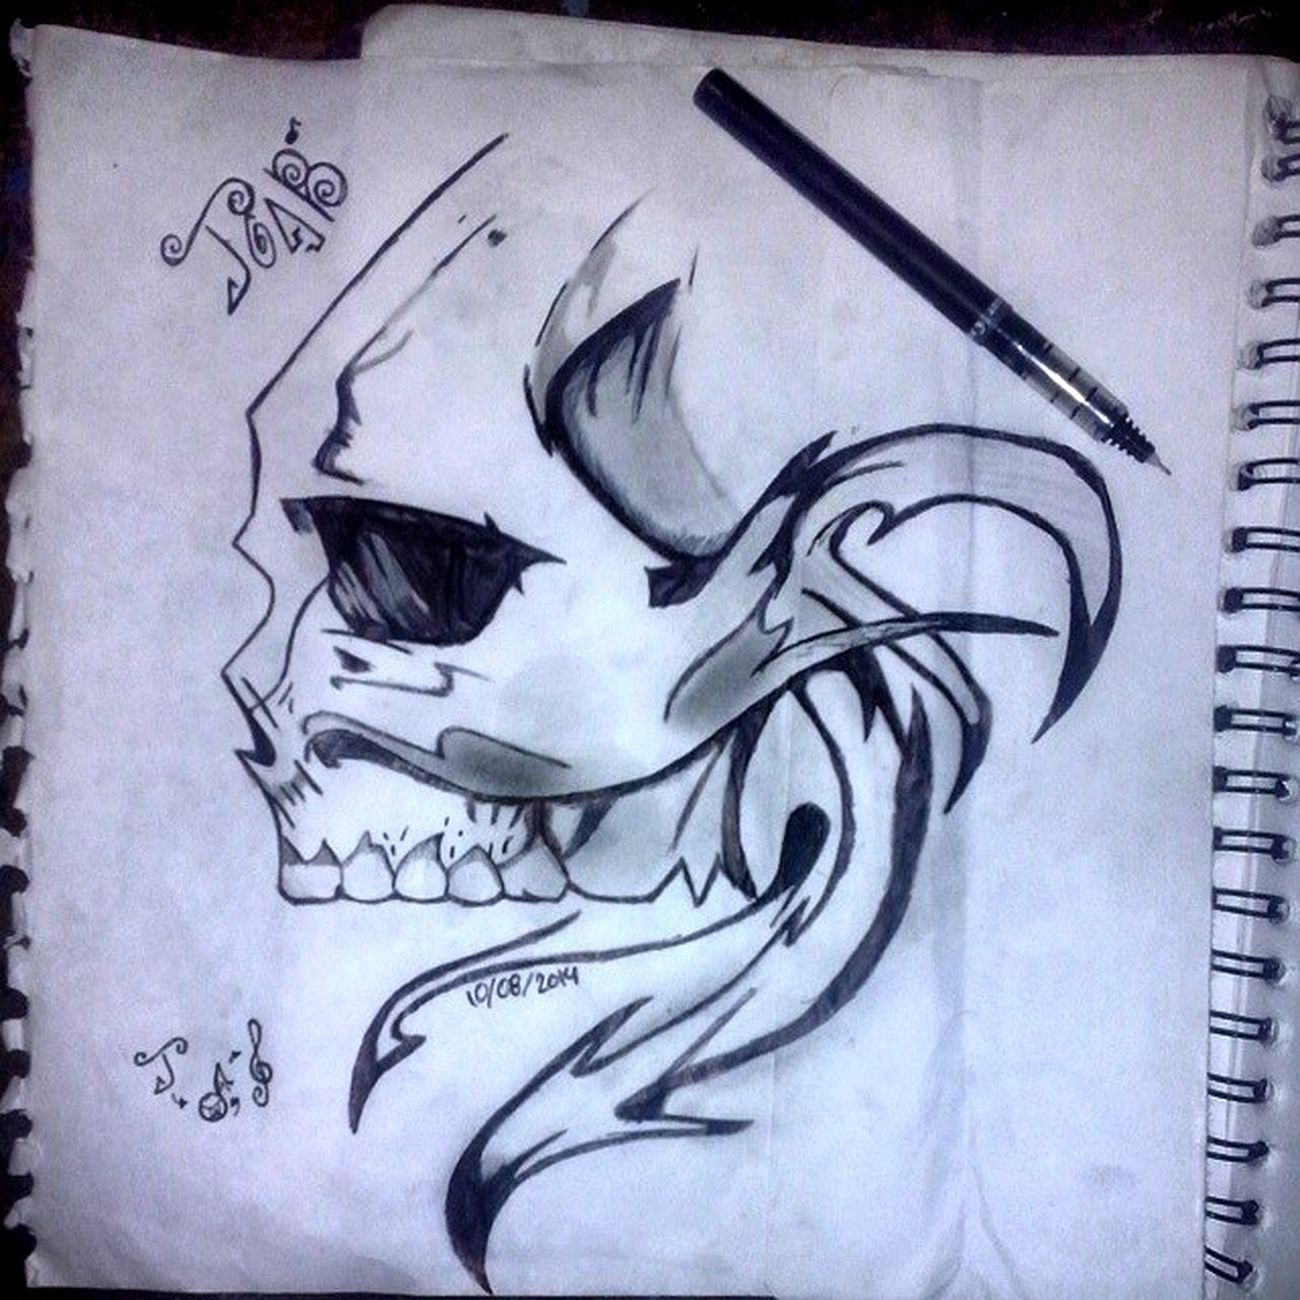 La Mente Detras Del Lapiz Drawingtime Mis Dibujos Dibujo A Lapiz Art, Drawing, Creativity ArtWork Dibujo Draw Drawing Artistic